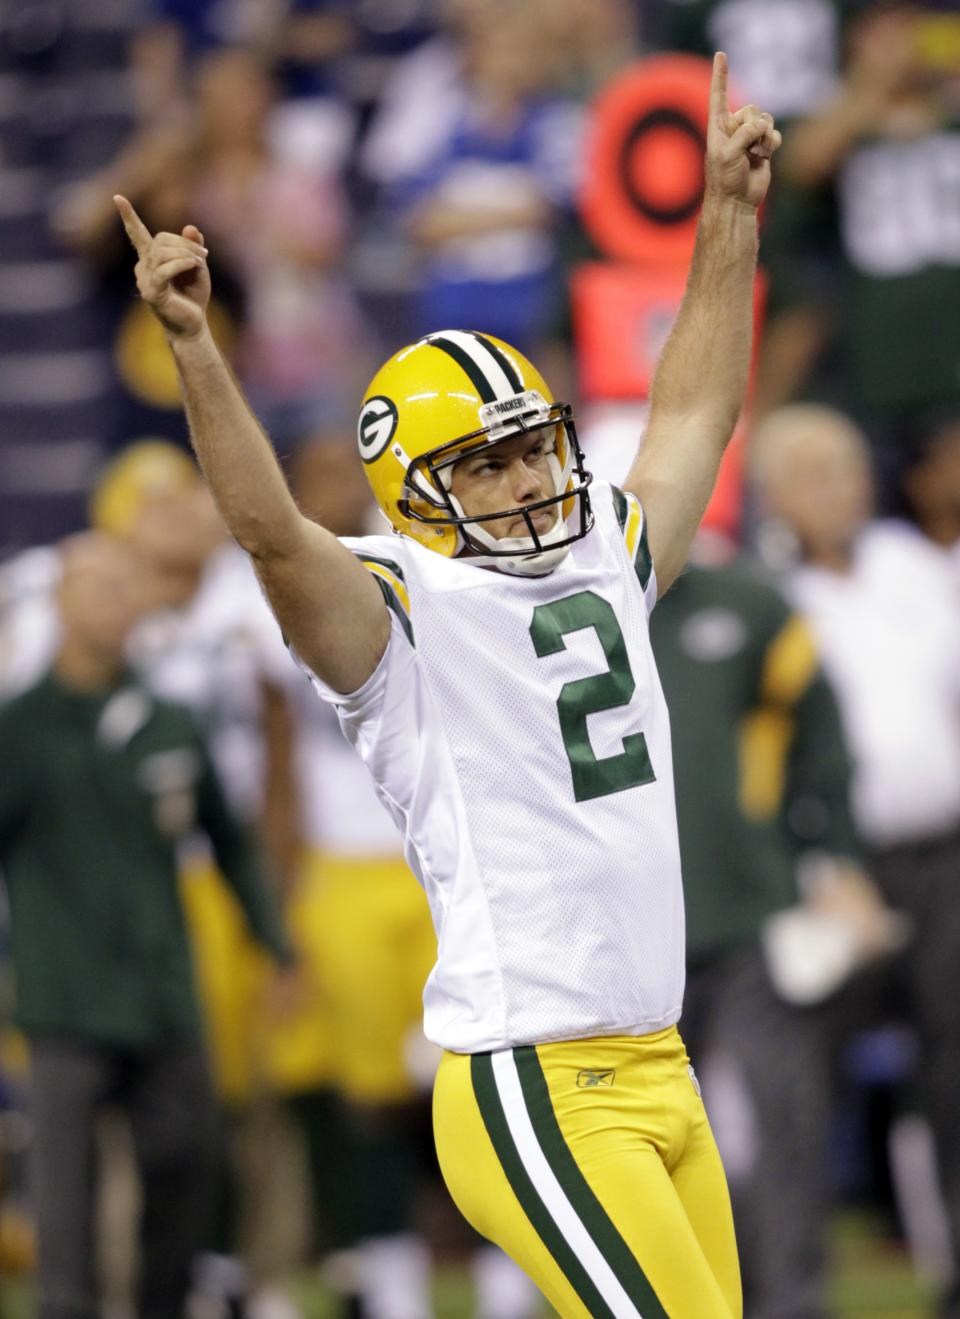 Green Bay Packers placekicker Mason Crosby celebrates his game-winning field goal as time expired the fourth quarter of an NFL preseason football game against the Indianapolis Colts in Indianapolis, Friday, Aug. 26, 2011. The Pacers defeated the Colts 24-21. (AP Photo/AJ Mast)